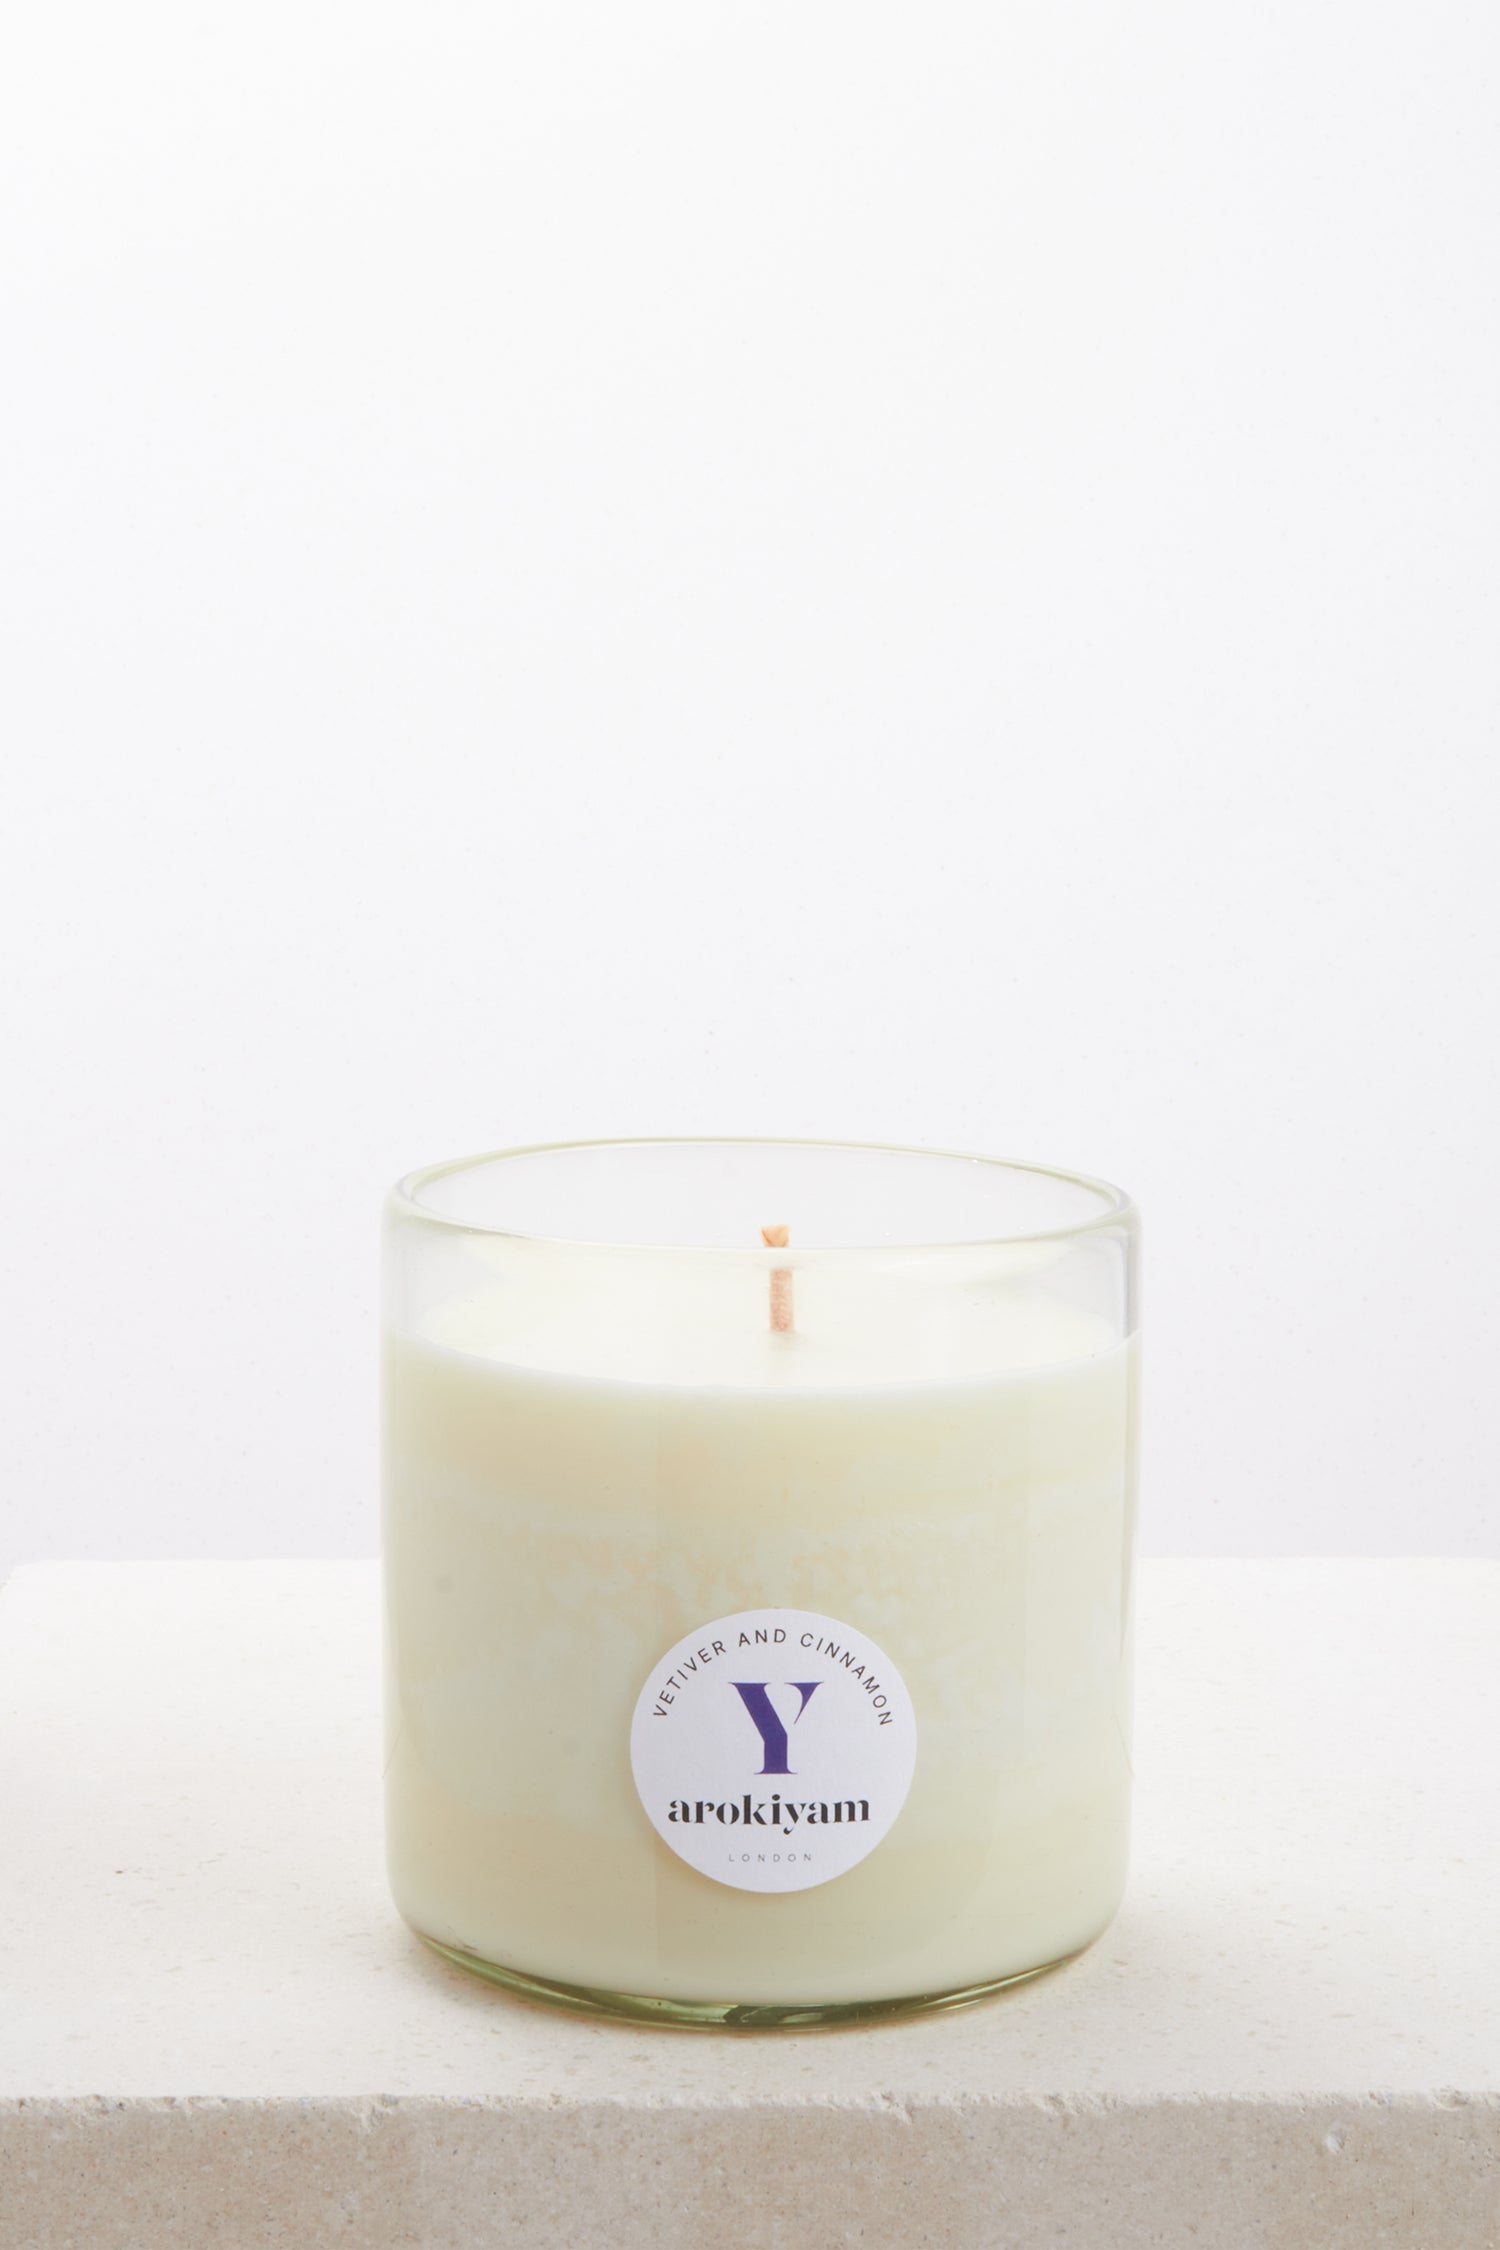 Vegan candle made from a coconut and soy wax and scented with natural vetiver and cinnamon. Made in London.